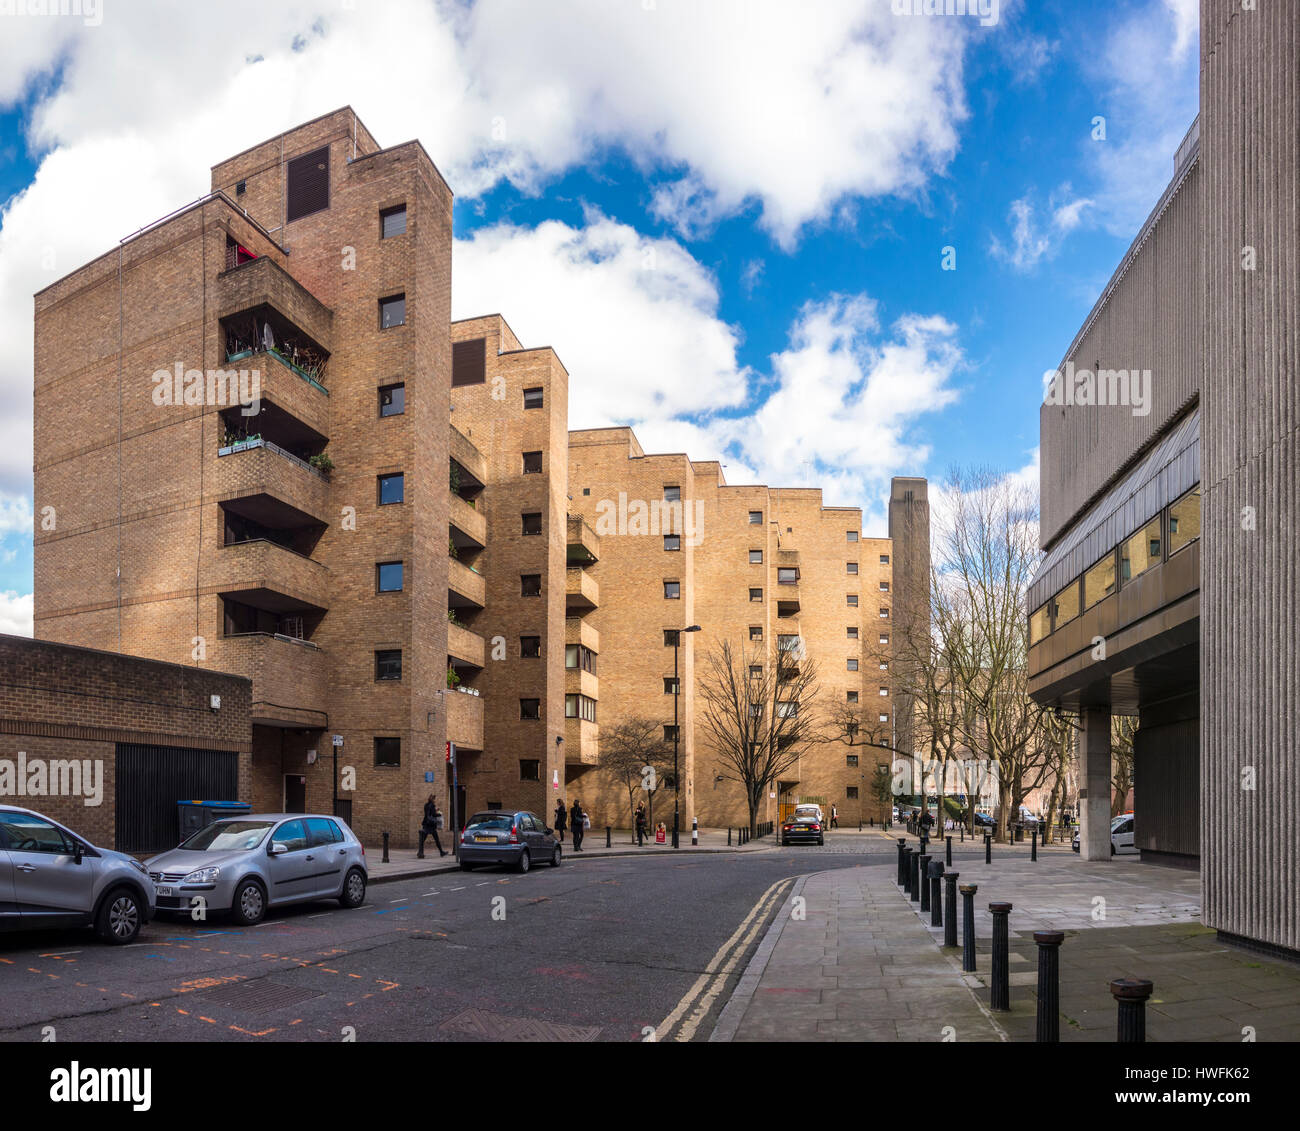 Falcon Point, former council house flats and apartments, Bankside, Southwark, London, UK - Stock Image